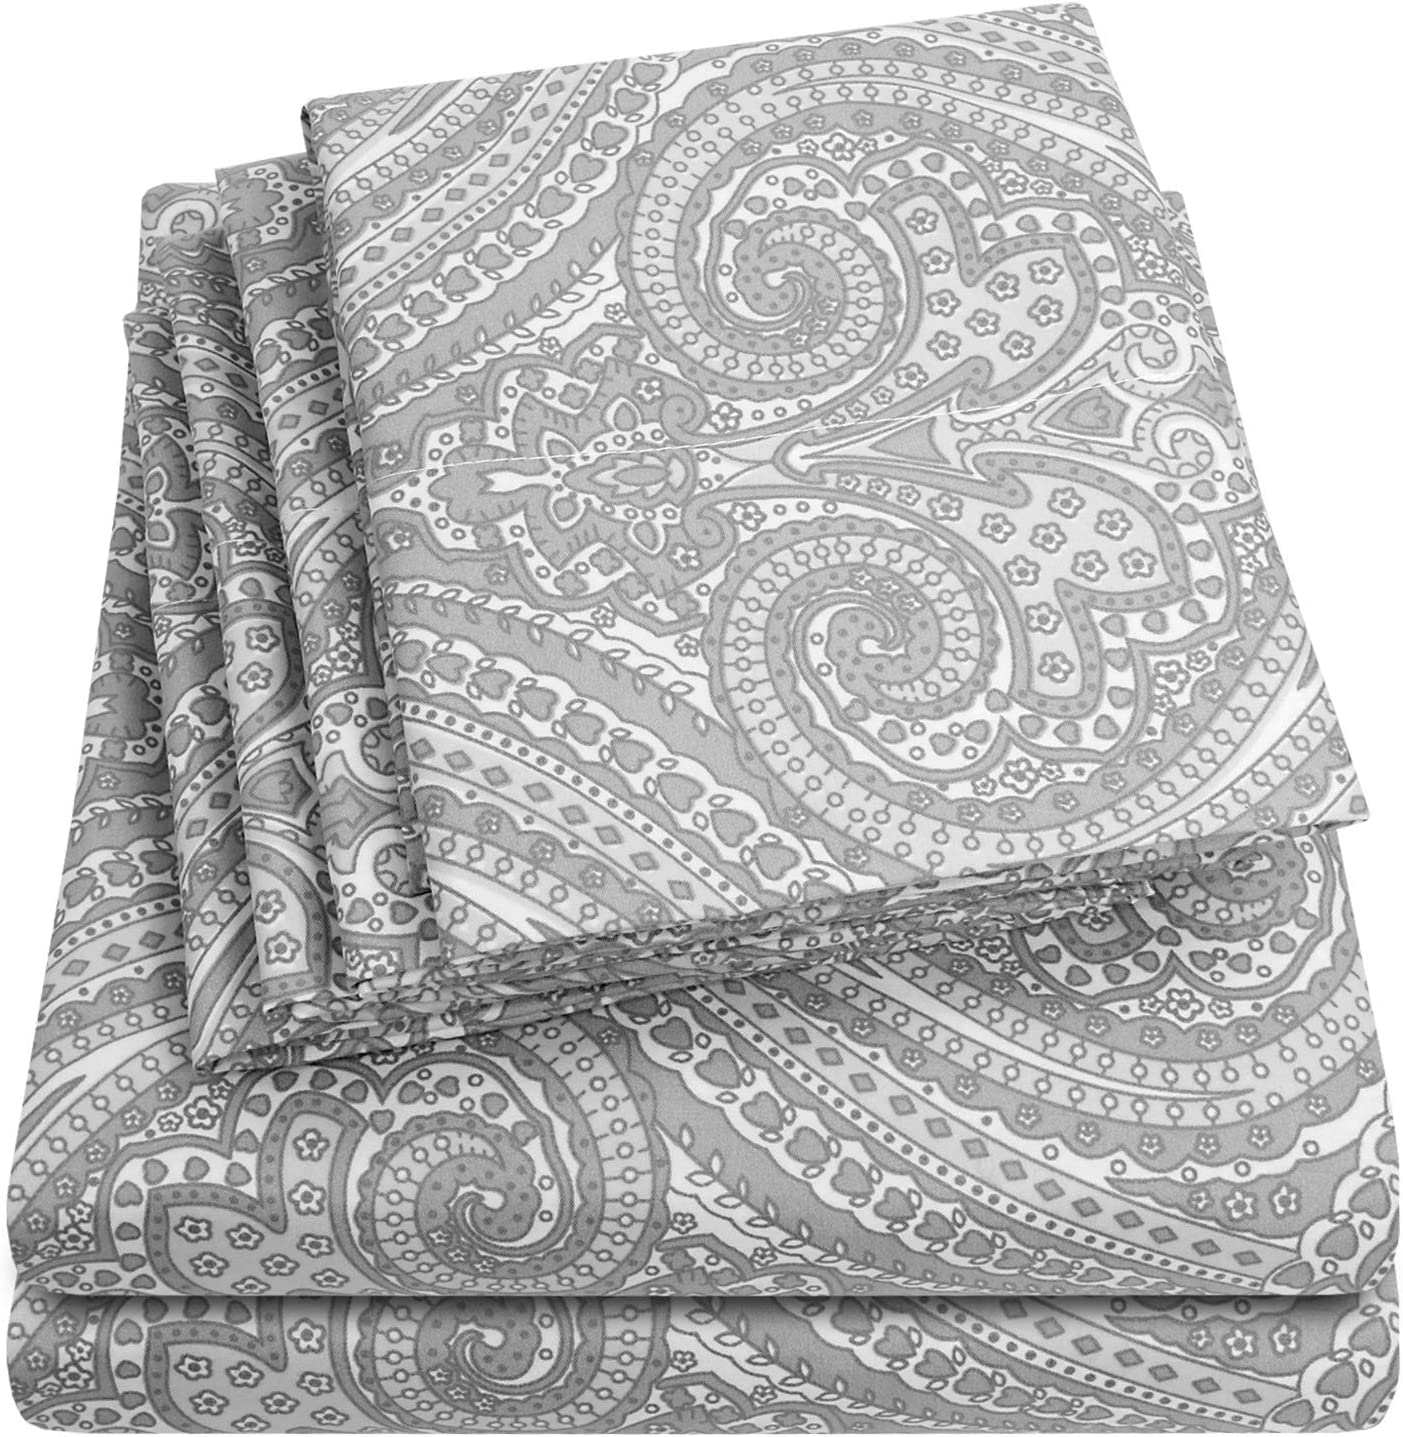 King Size Bed Sheets - 6 Piece 1500 Thread Count Fine Brushed Microfiber Deep Pocket King Sheet Set Bedding - 2 Extra Pillow Cases, Great Value, King, Paisley Gray